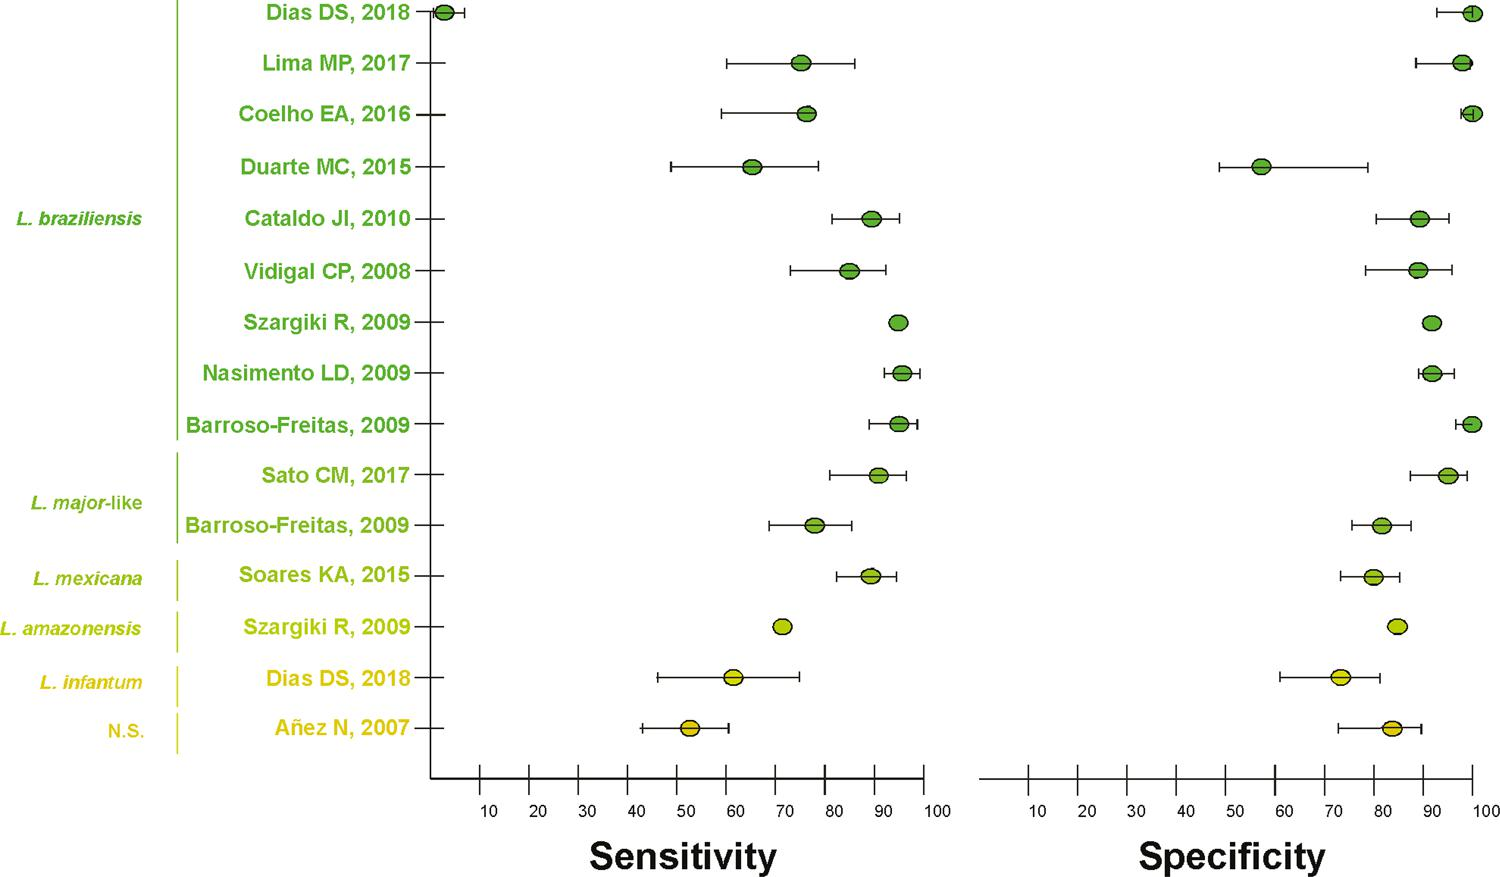 Summary of sensitivity and specificity values of standard ELISA assays based on soluble antigen of specific Leishmania species. Observation: the author did not specify the Leishmania specie used.